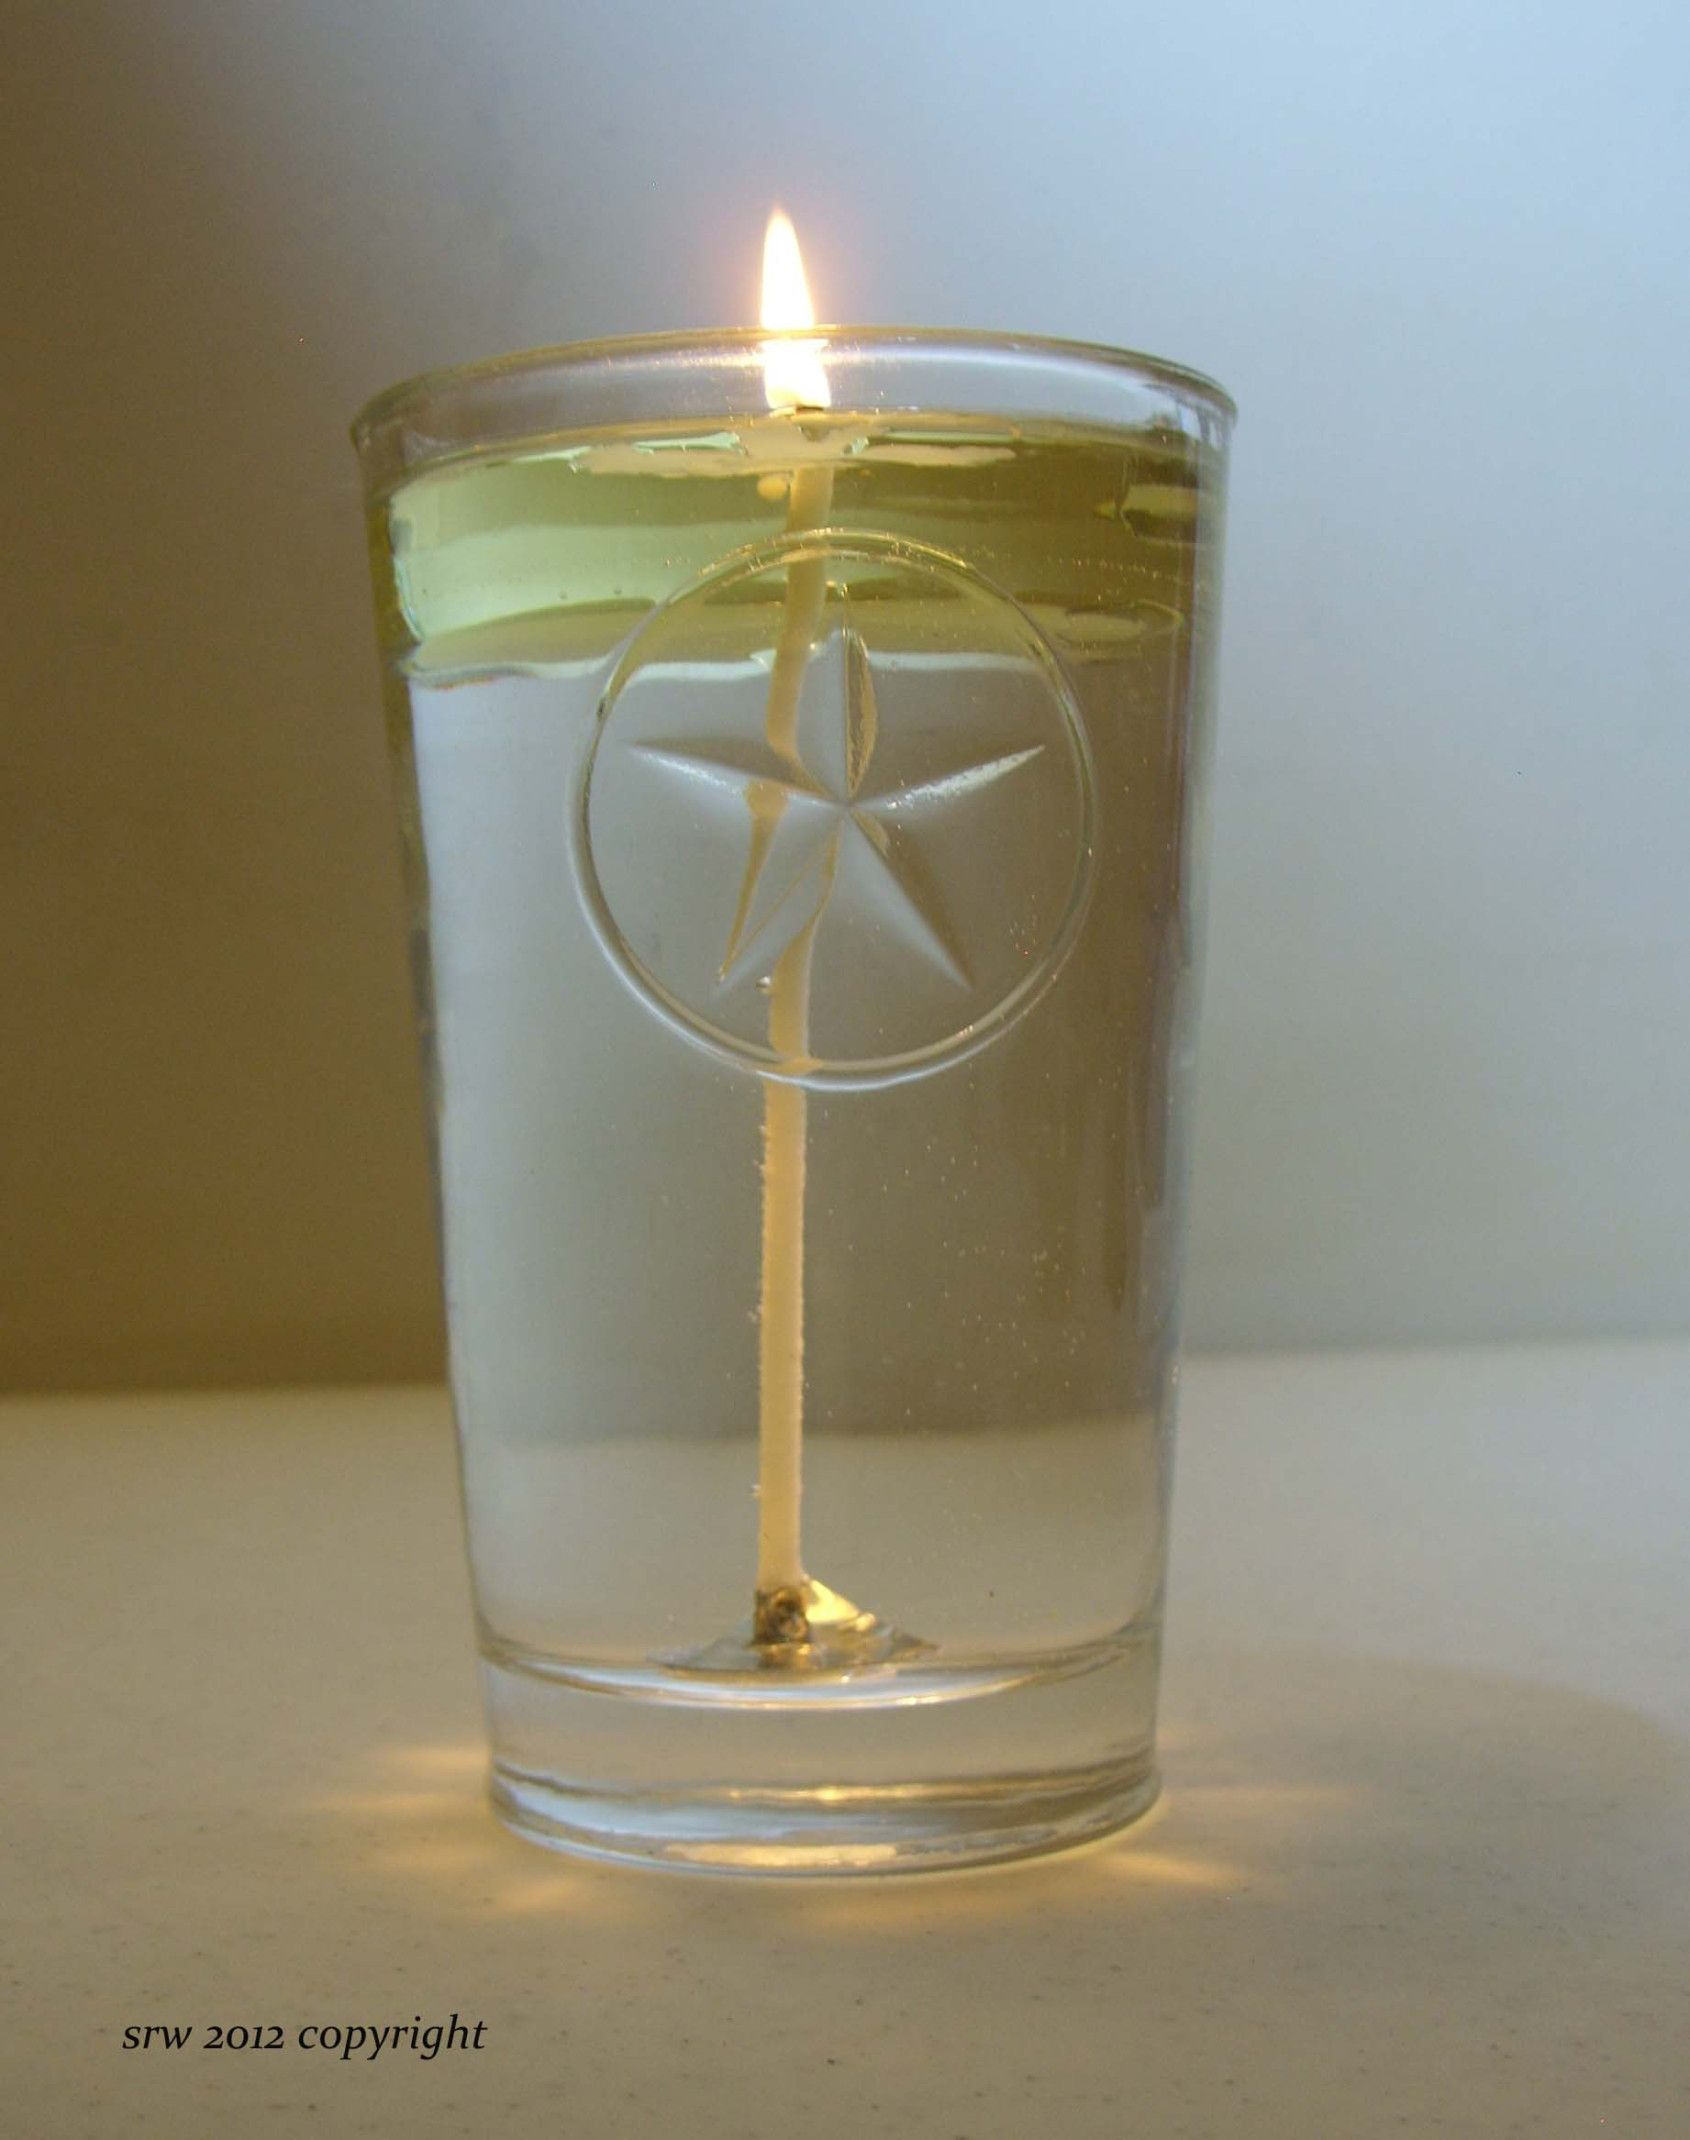 Candles and candle cooking: a selection of sites